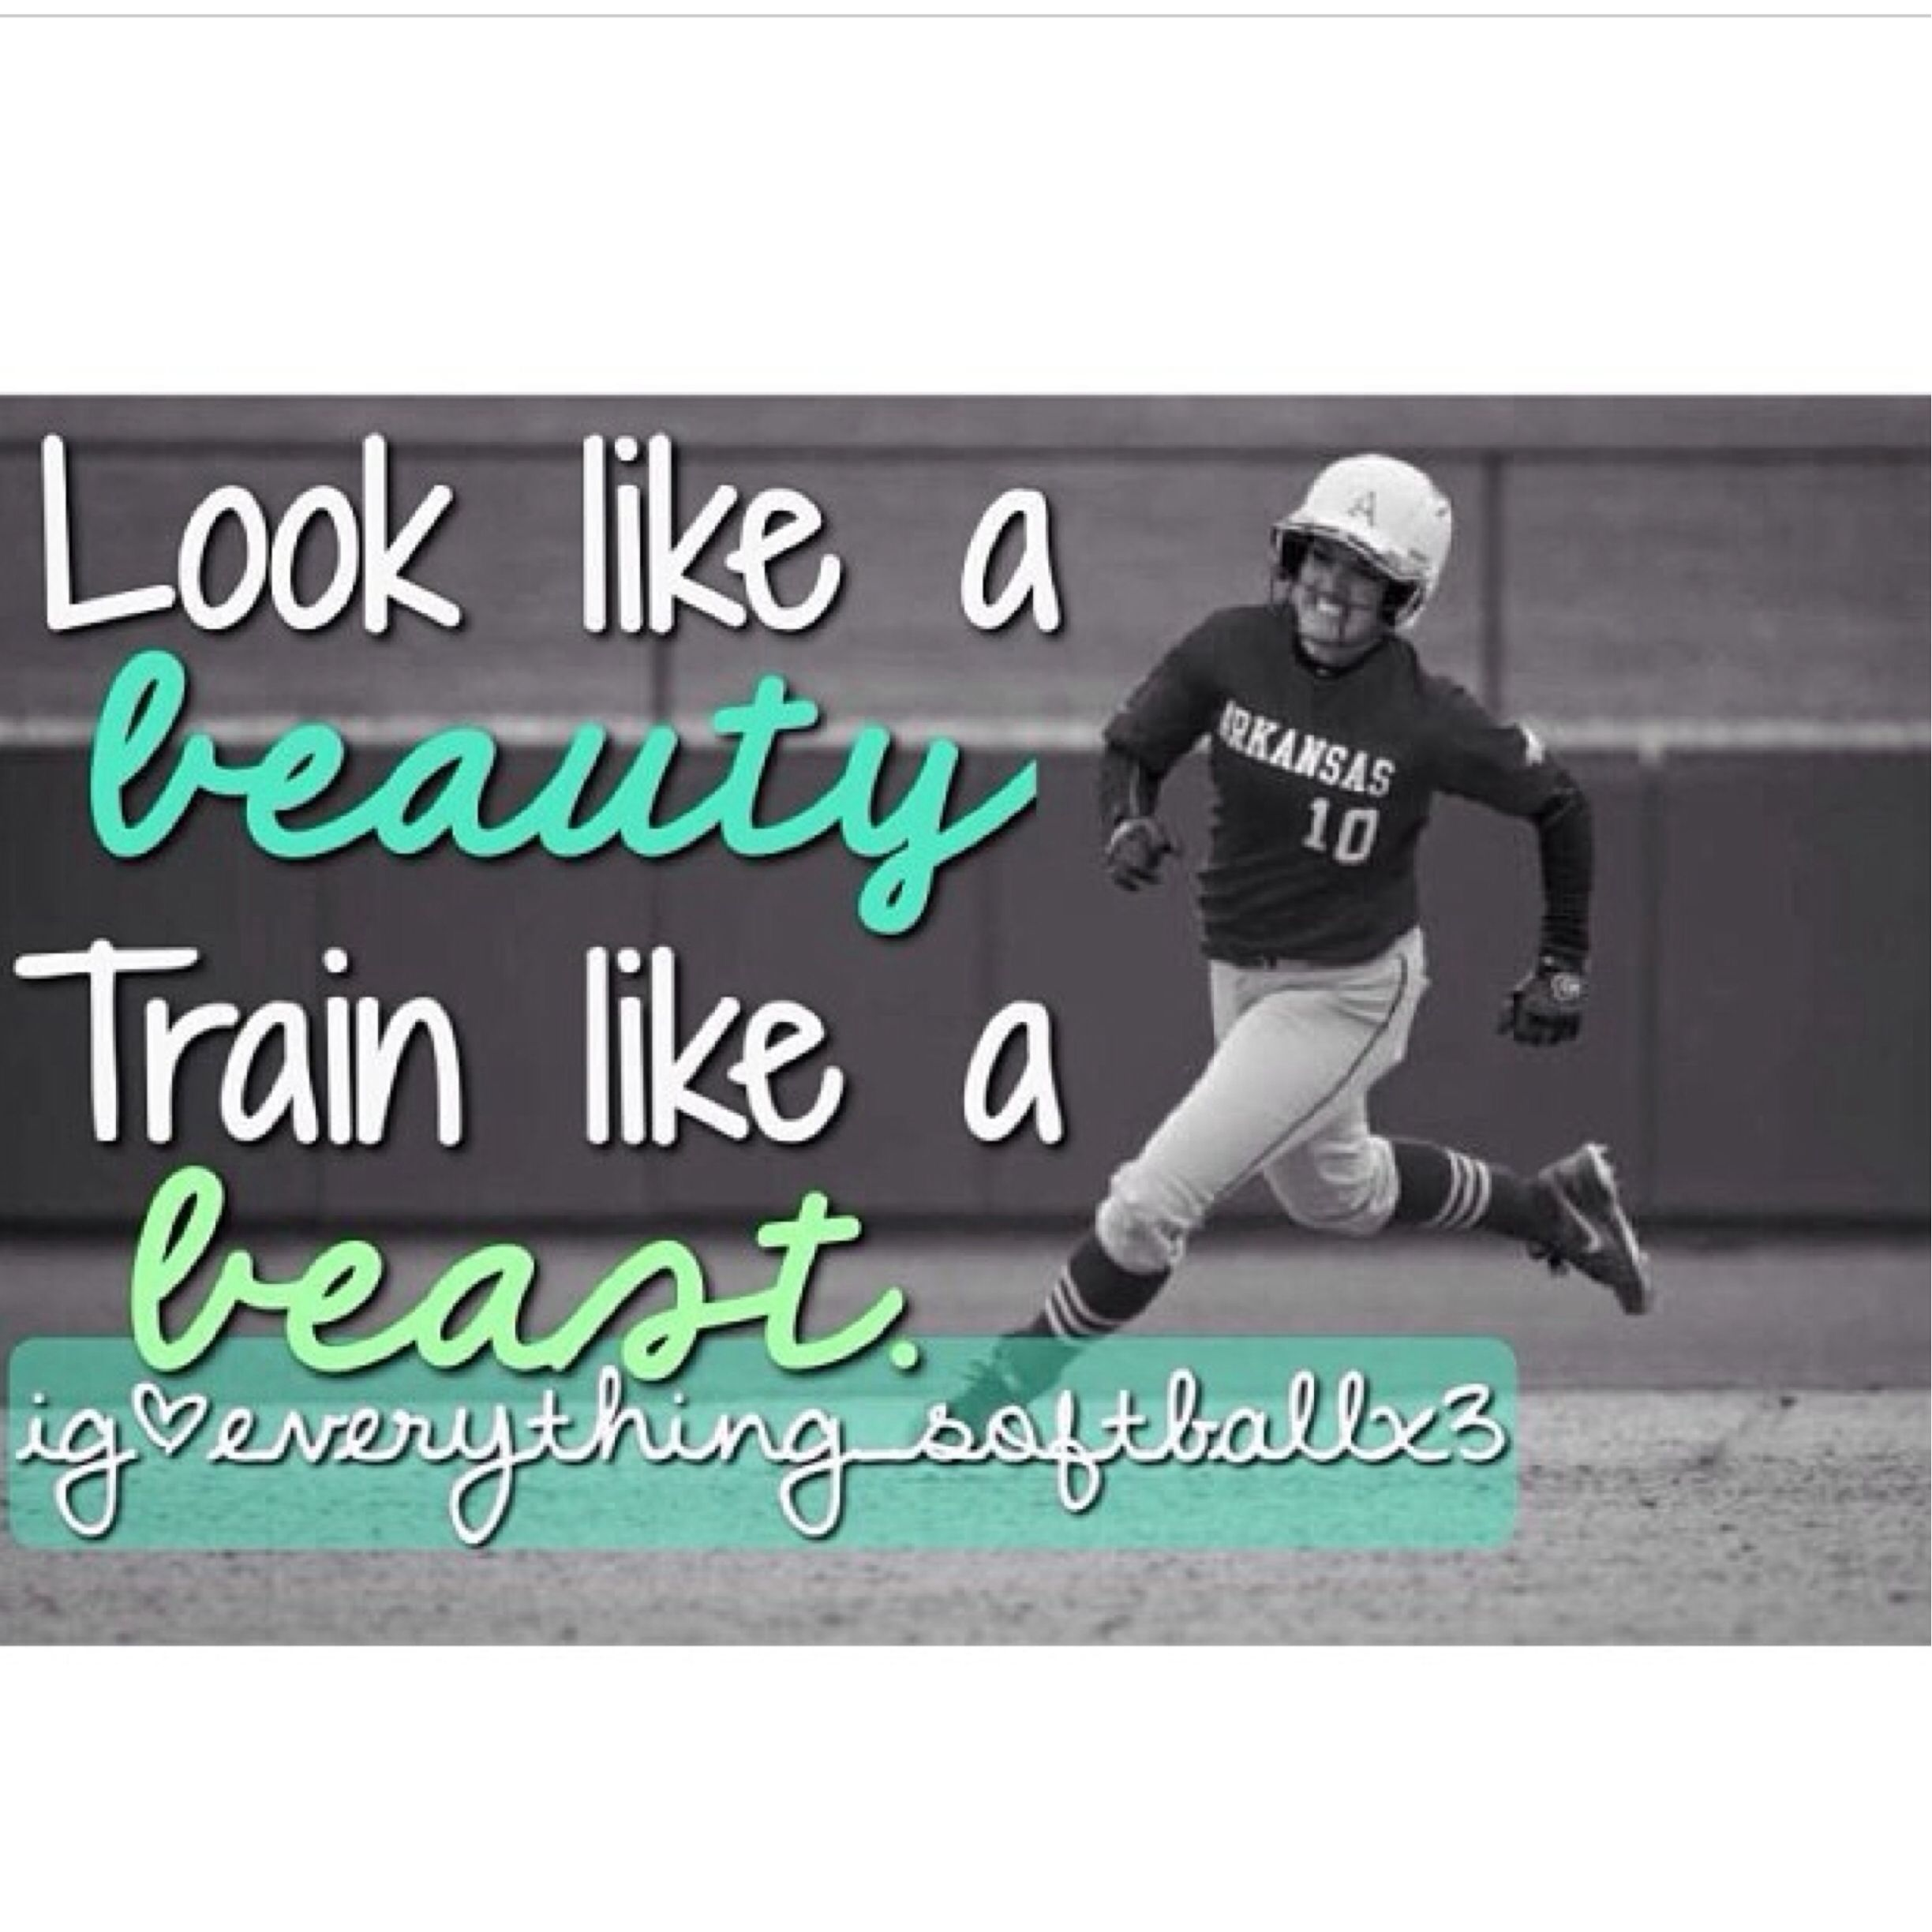 softball sayings for girls license plates softball sayings for